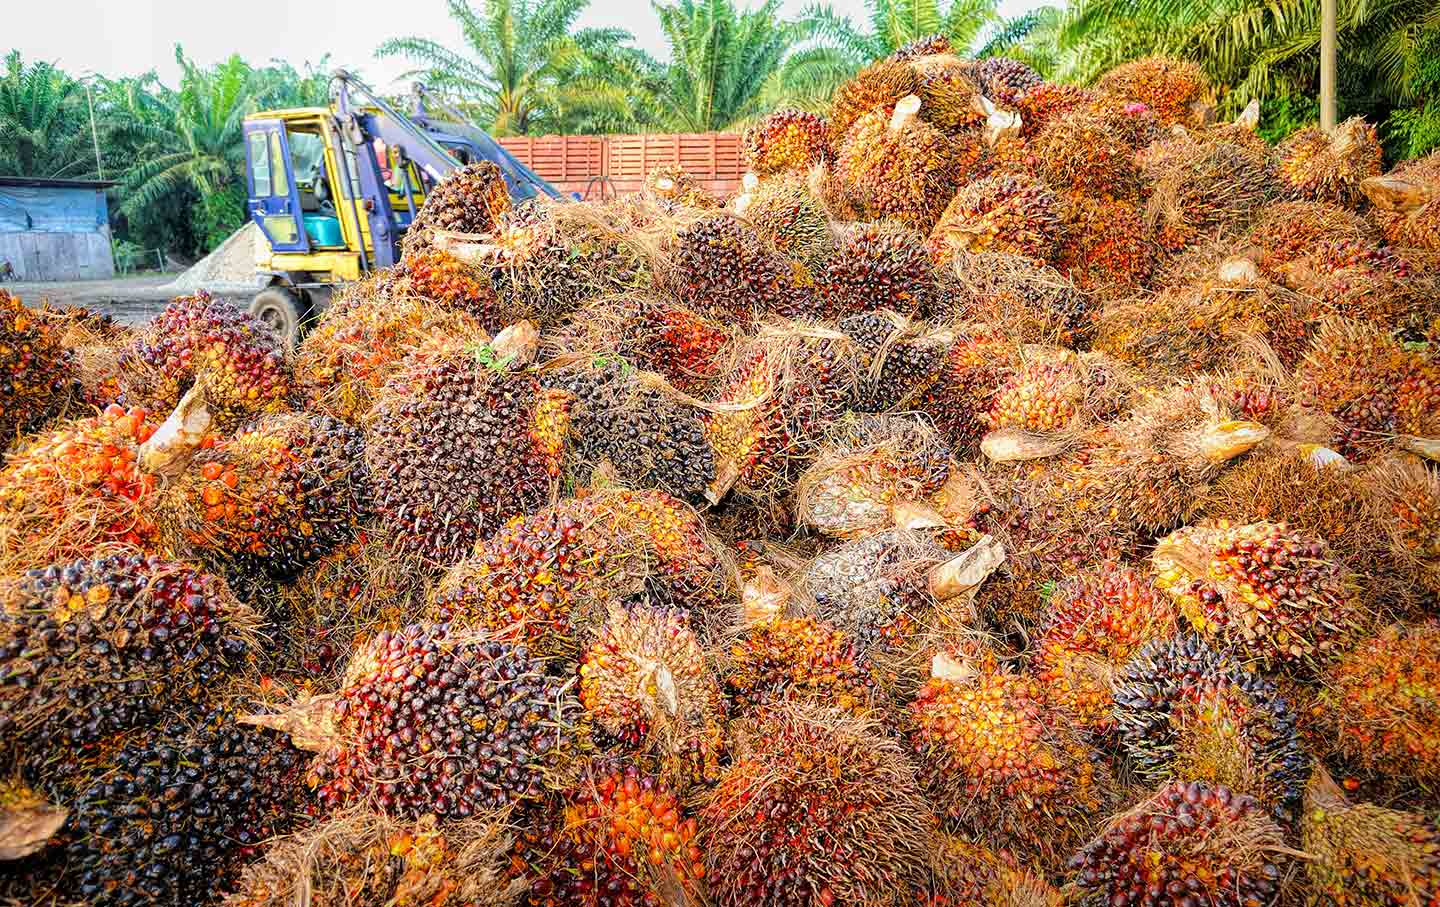 Harvested palm fruit for processing to oil